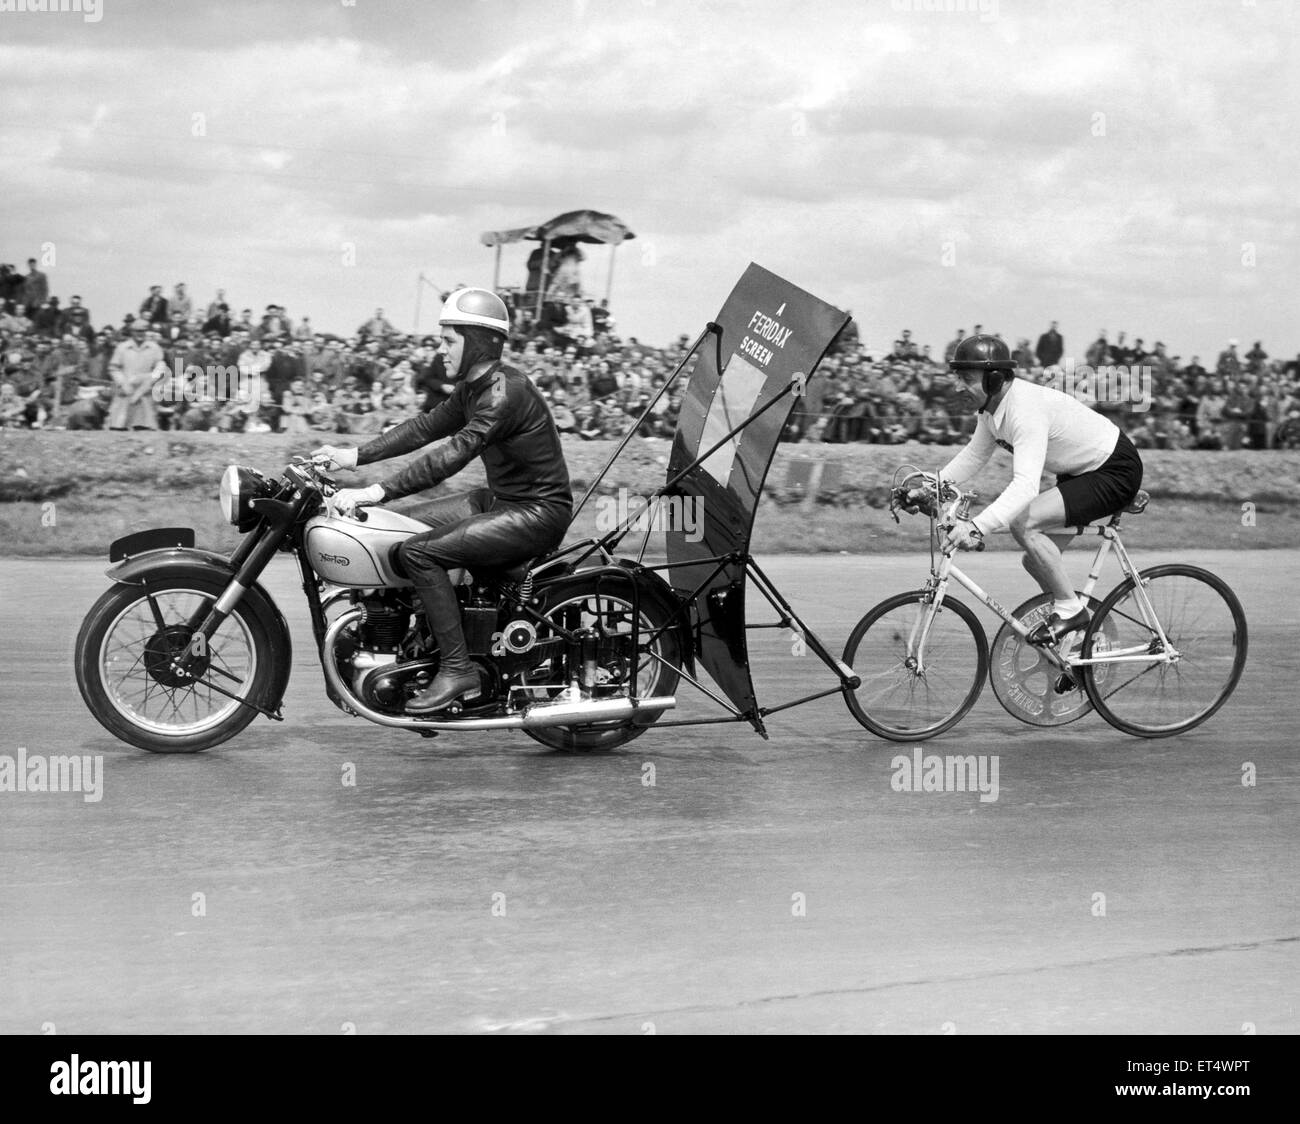 Mackeson Premier at the Crystal Palace race track, London. 9th August 1964. - Stock Image